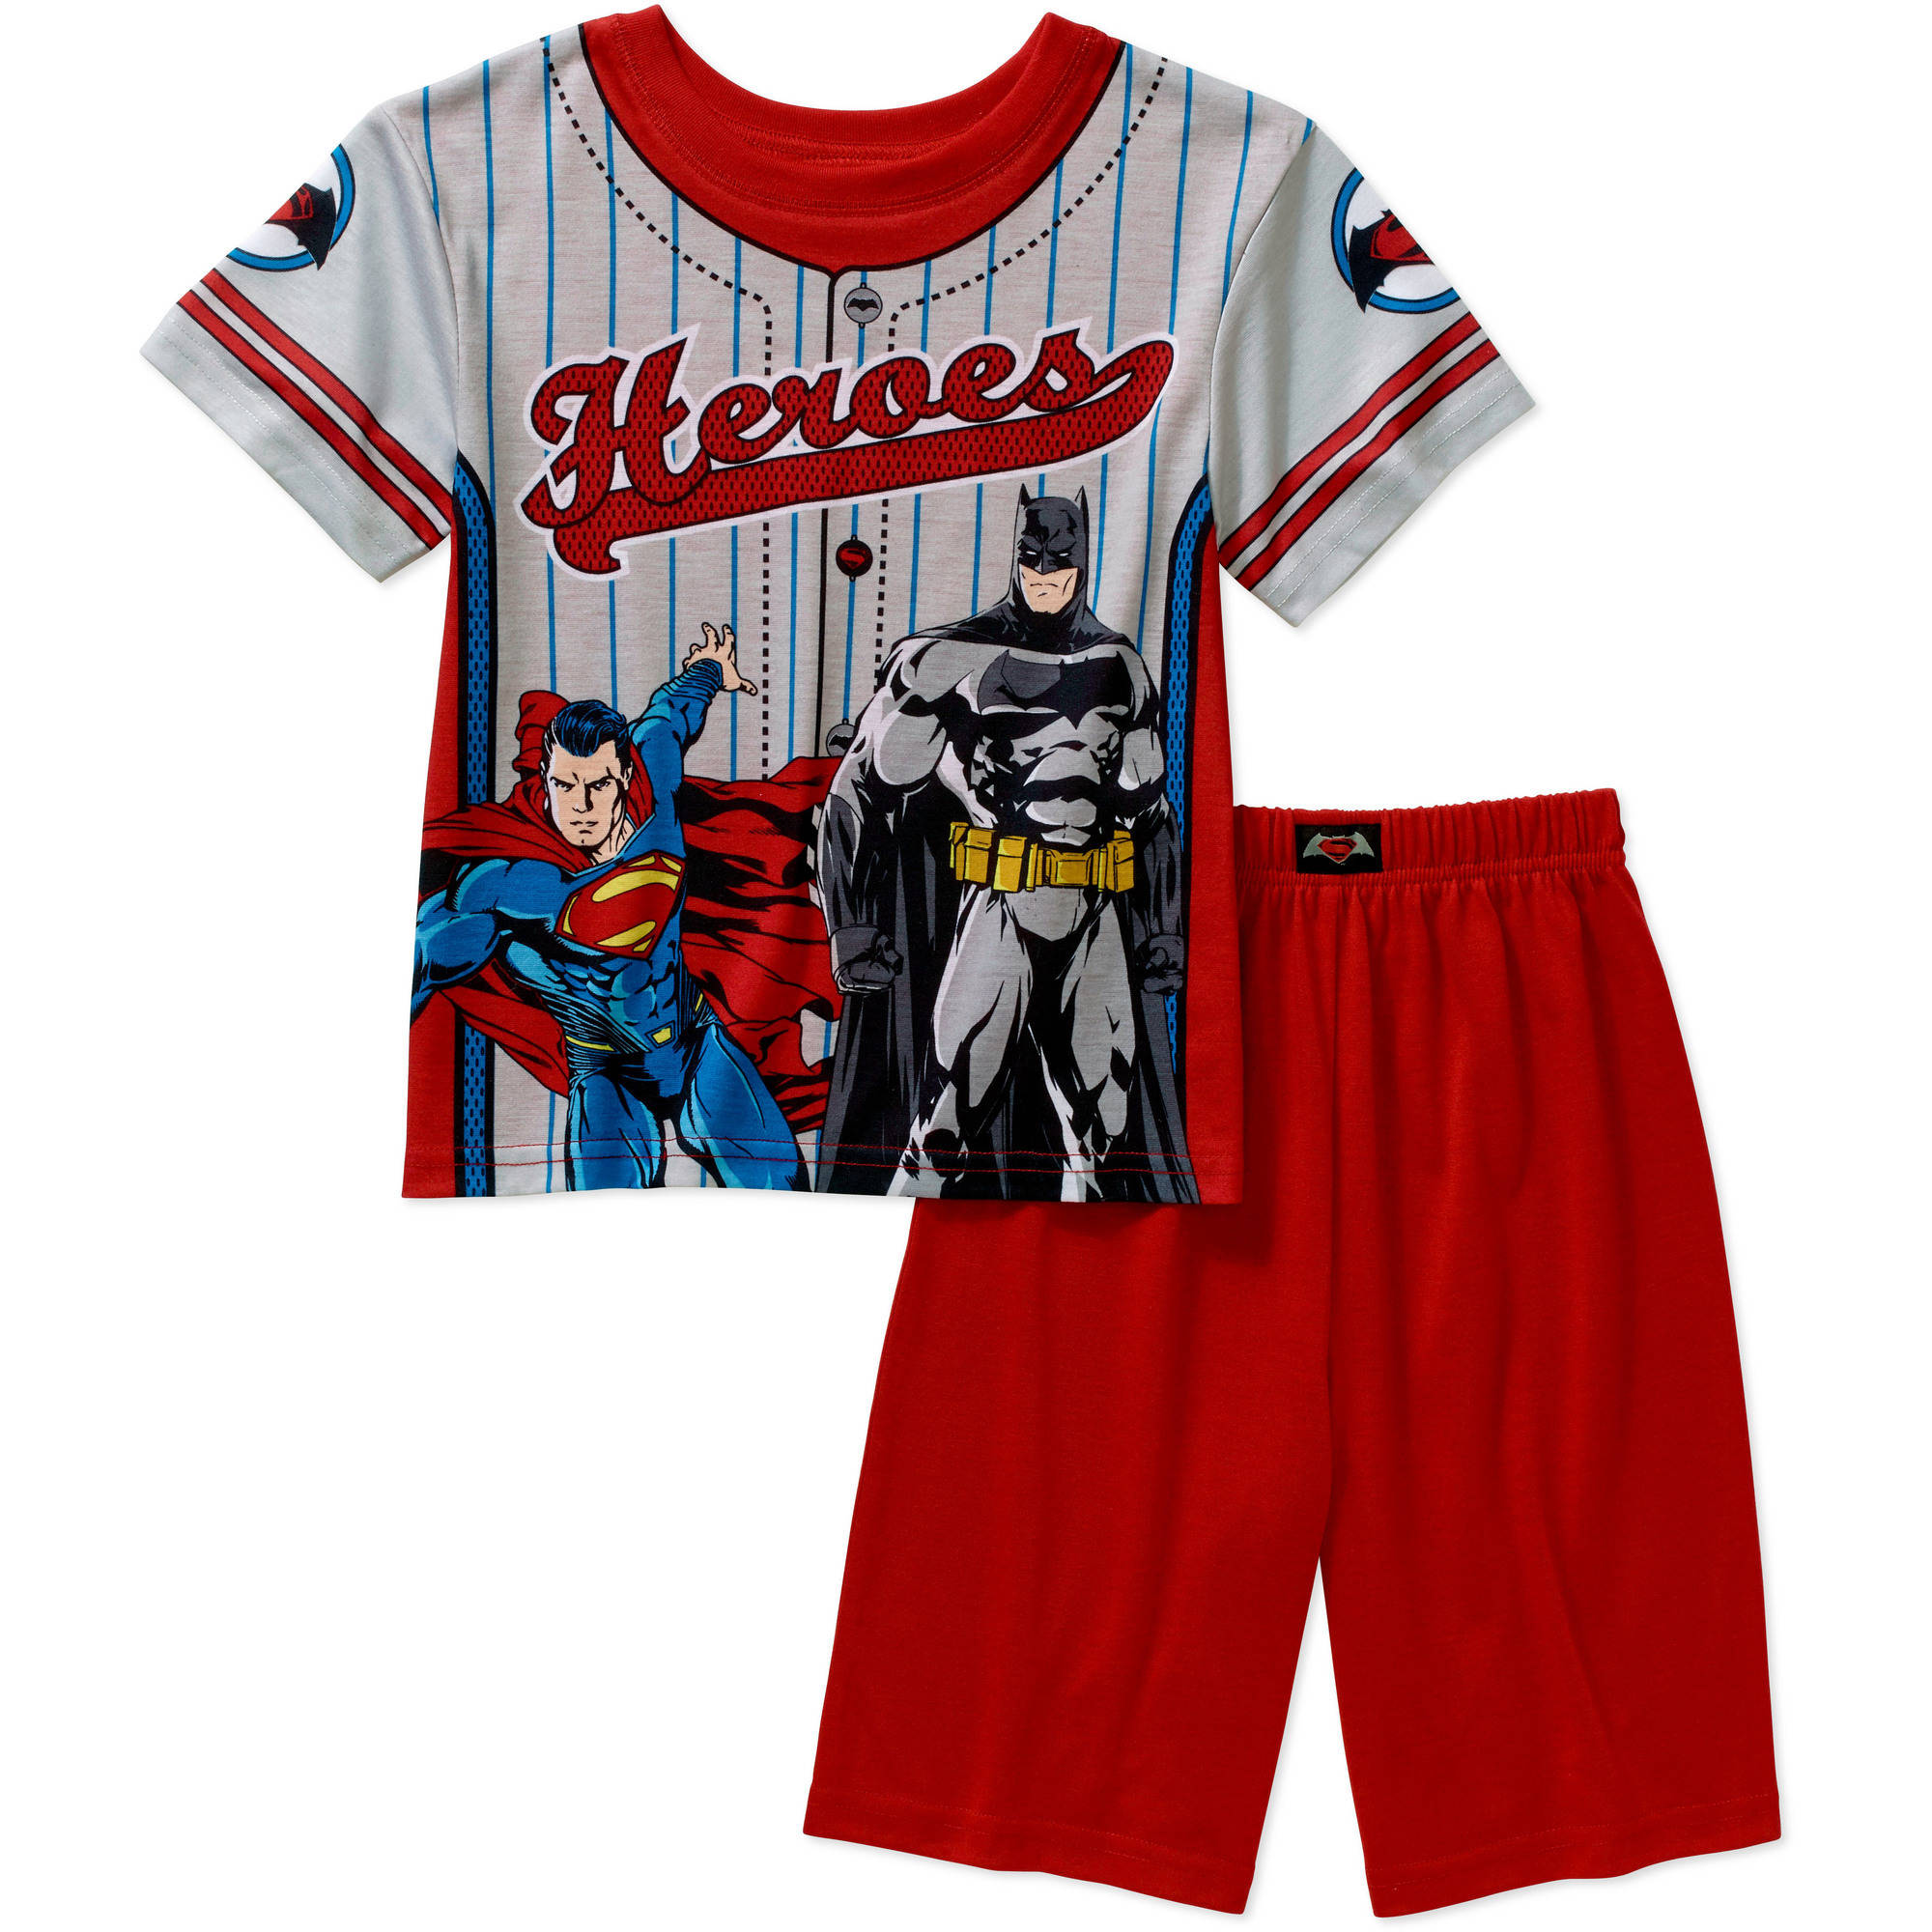 DC Comics Batman Boys' License Muscle Sleep Shirt and Short 2 Piece Pajama Set